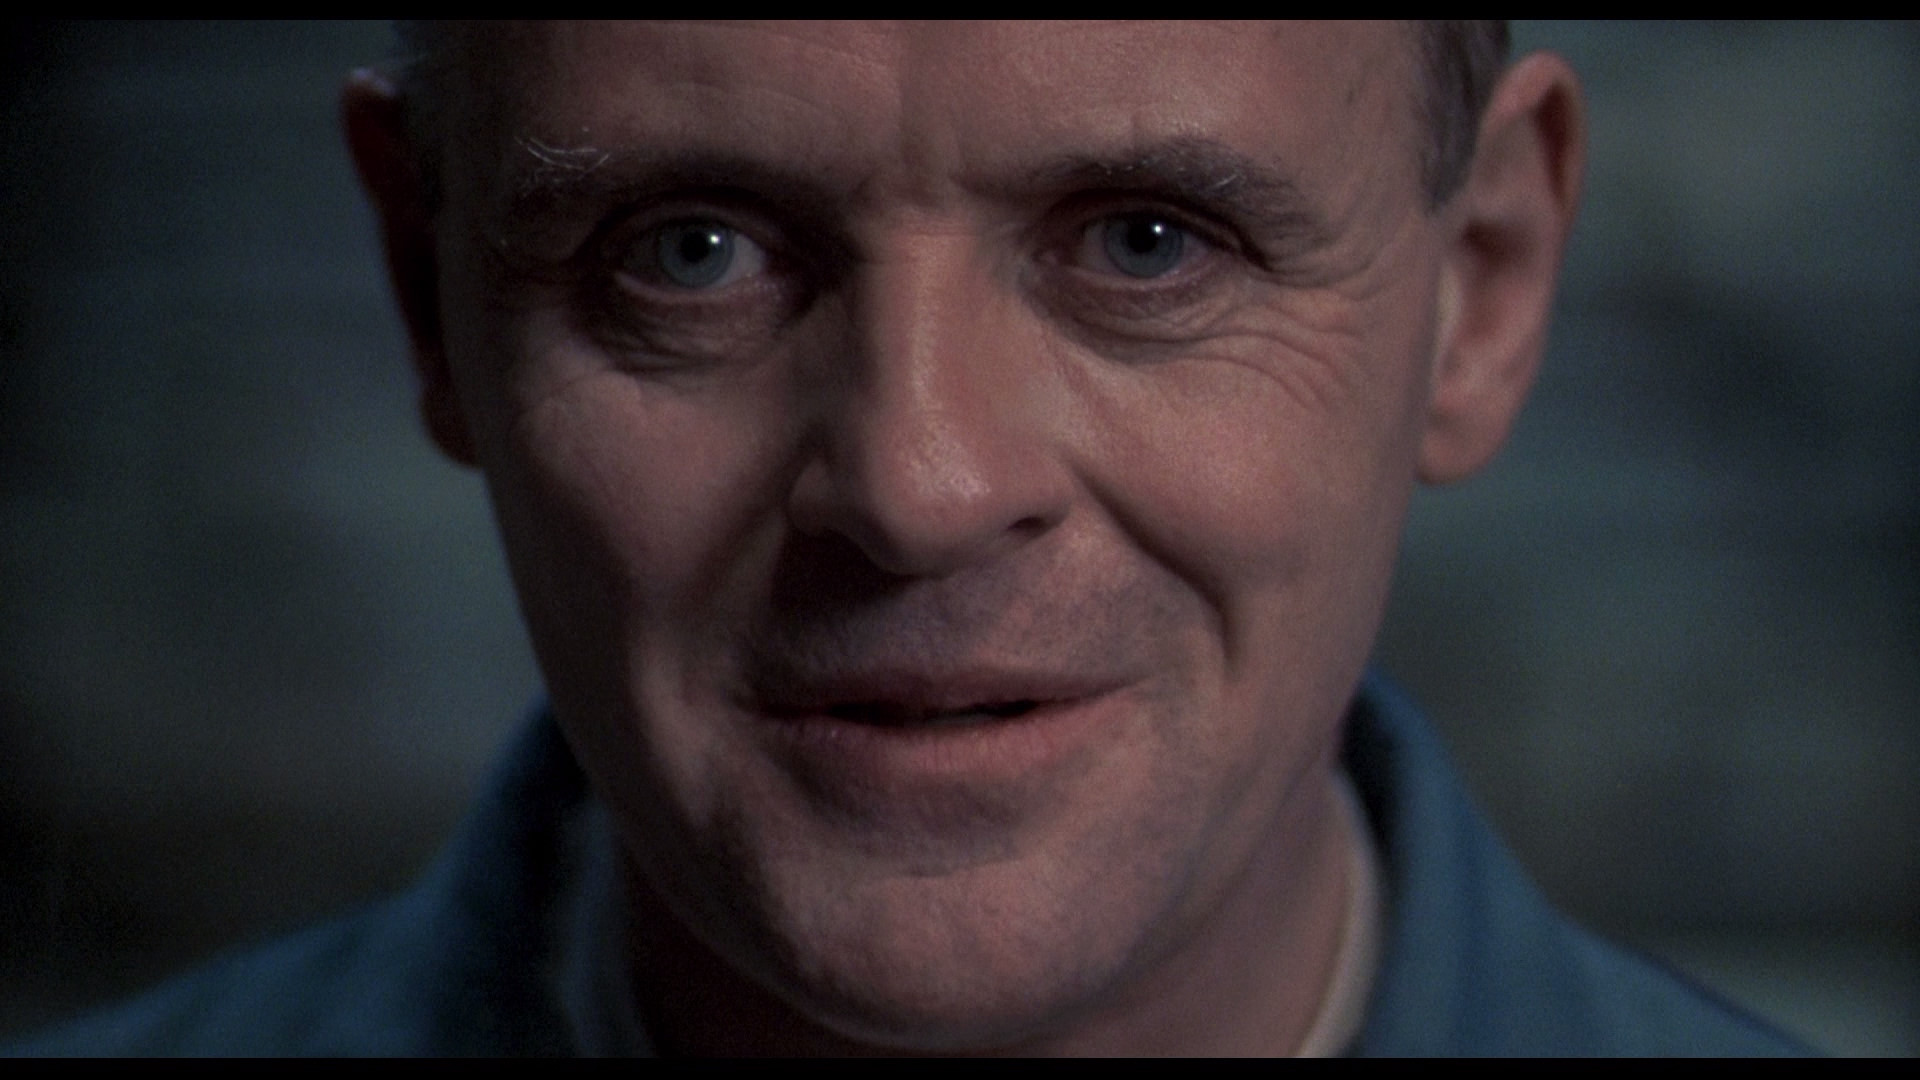 The Silence Of The Lambs Wallpaper 14   1920 X 1080 stmednet 1920x1080